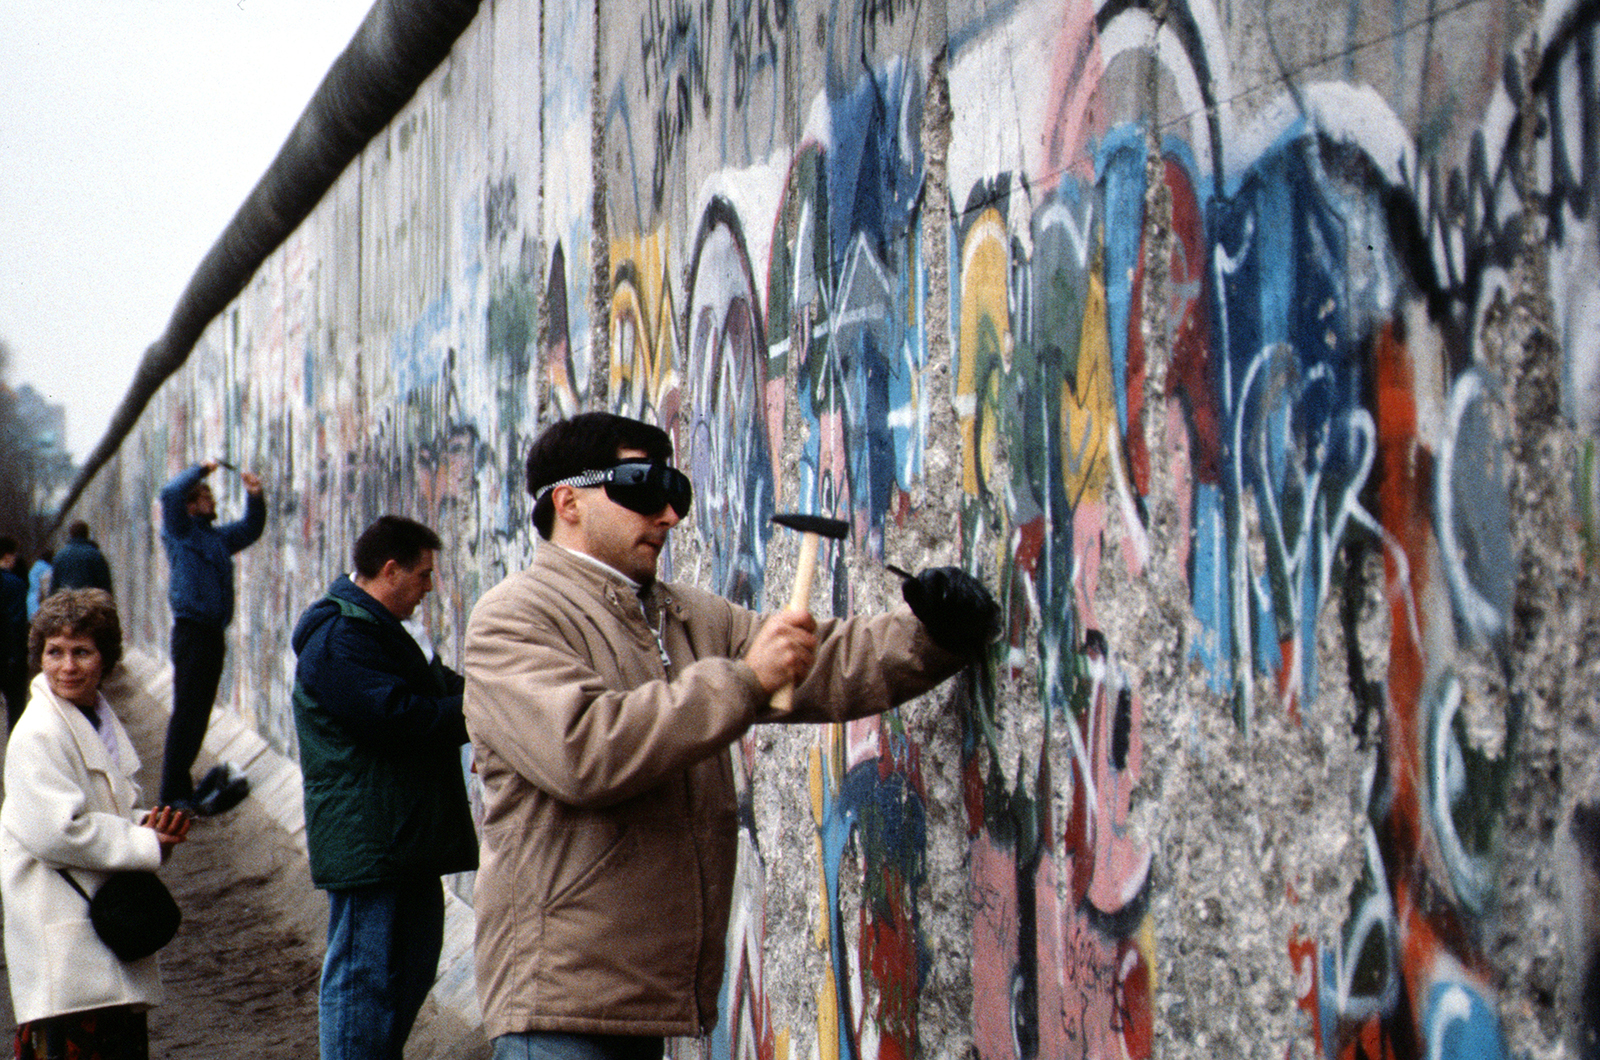 People tearing down the Berlin Wall, 1989